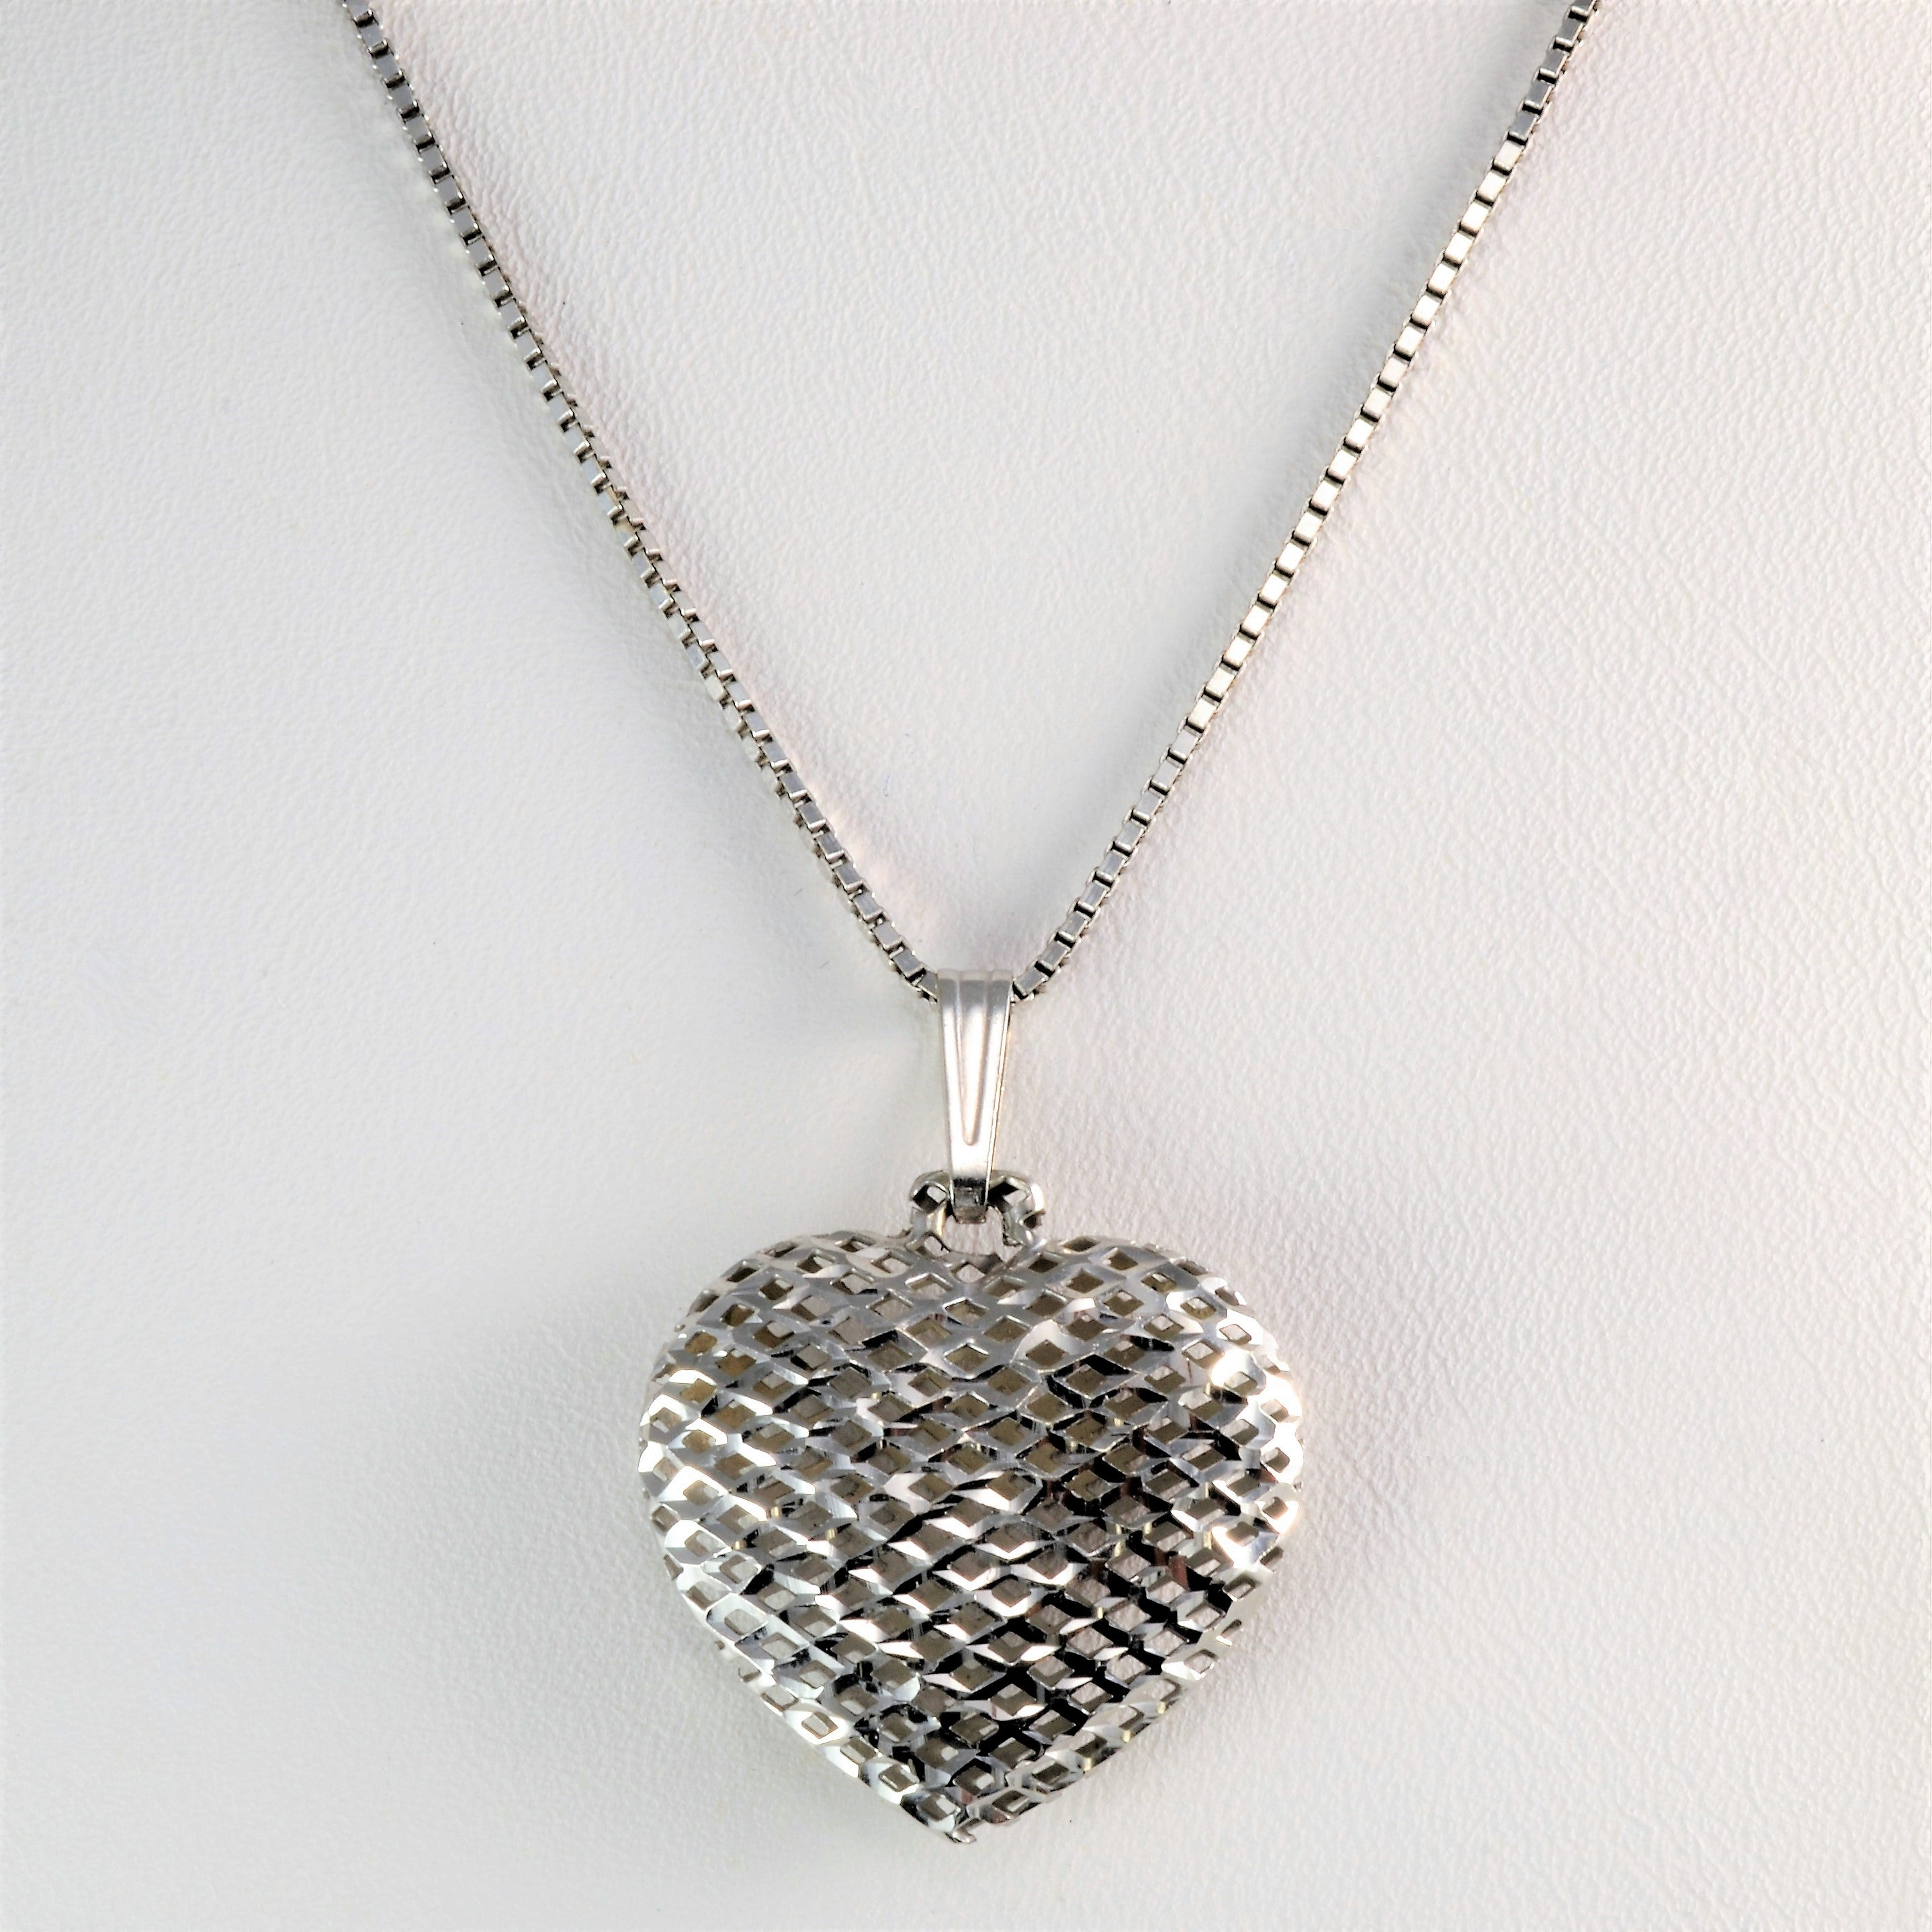 Woven puffed heart pendant necklace 17 100 ways woven puffed heart pendant necklace 17 mozeypictures Choice Image